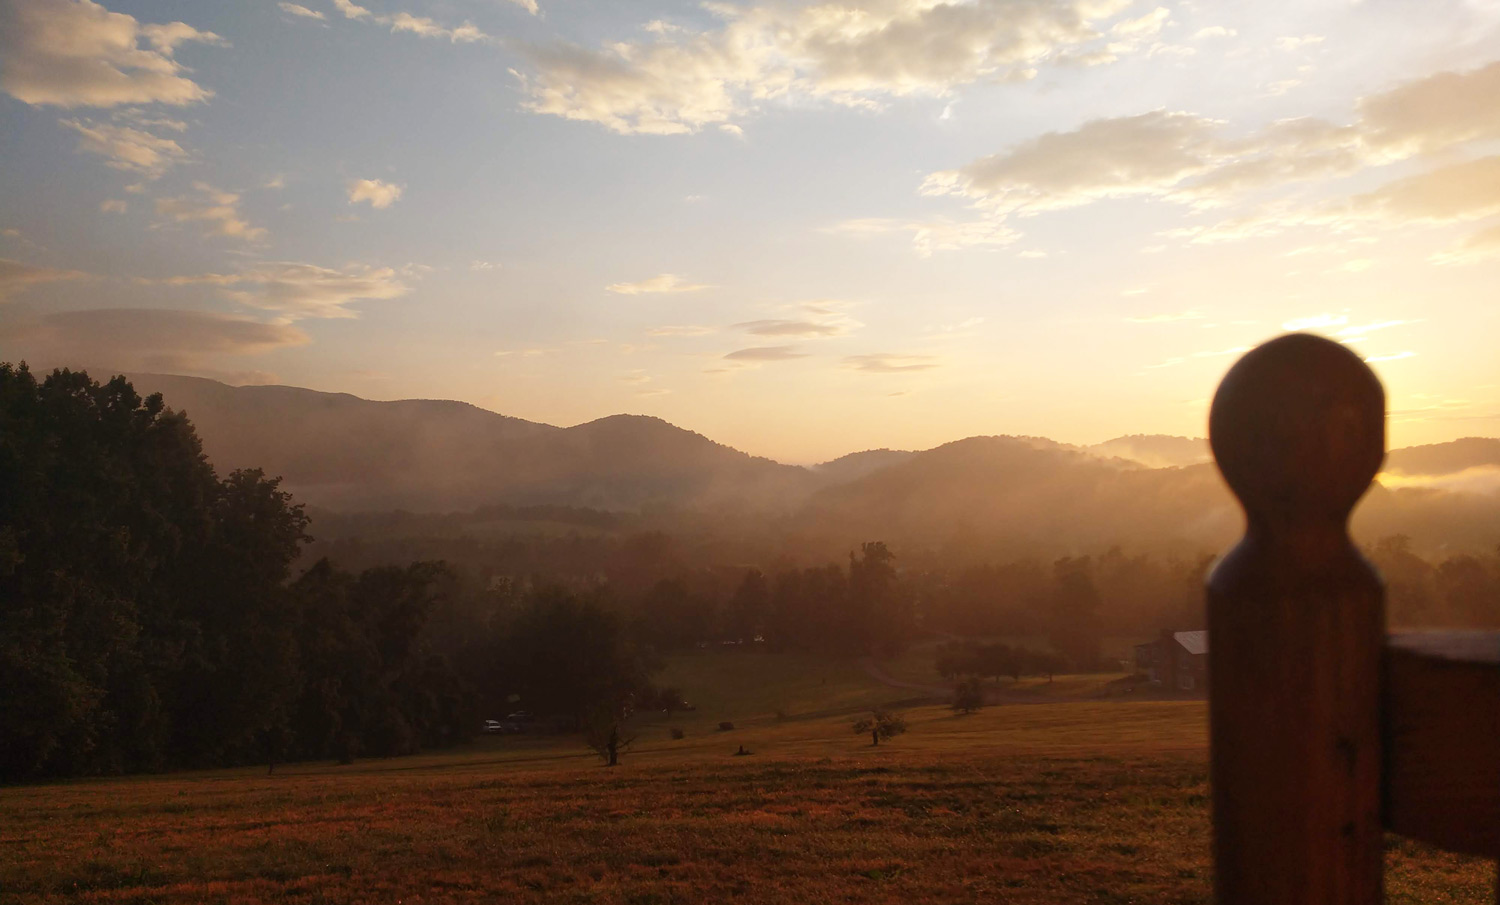 Rose River Valley Sunrise at Graves Mountain Farm & Lodges